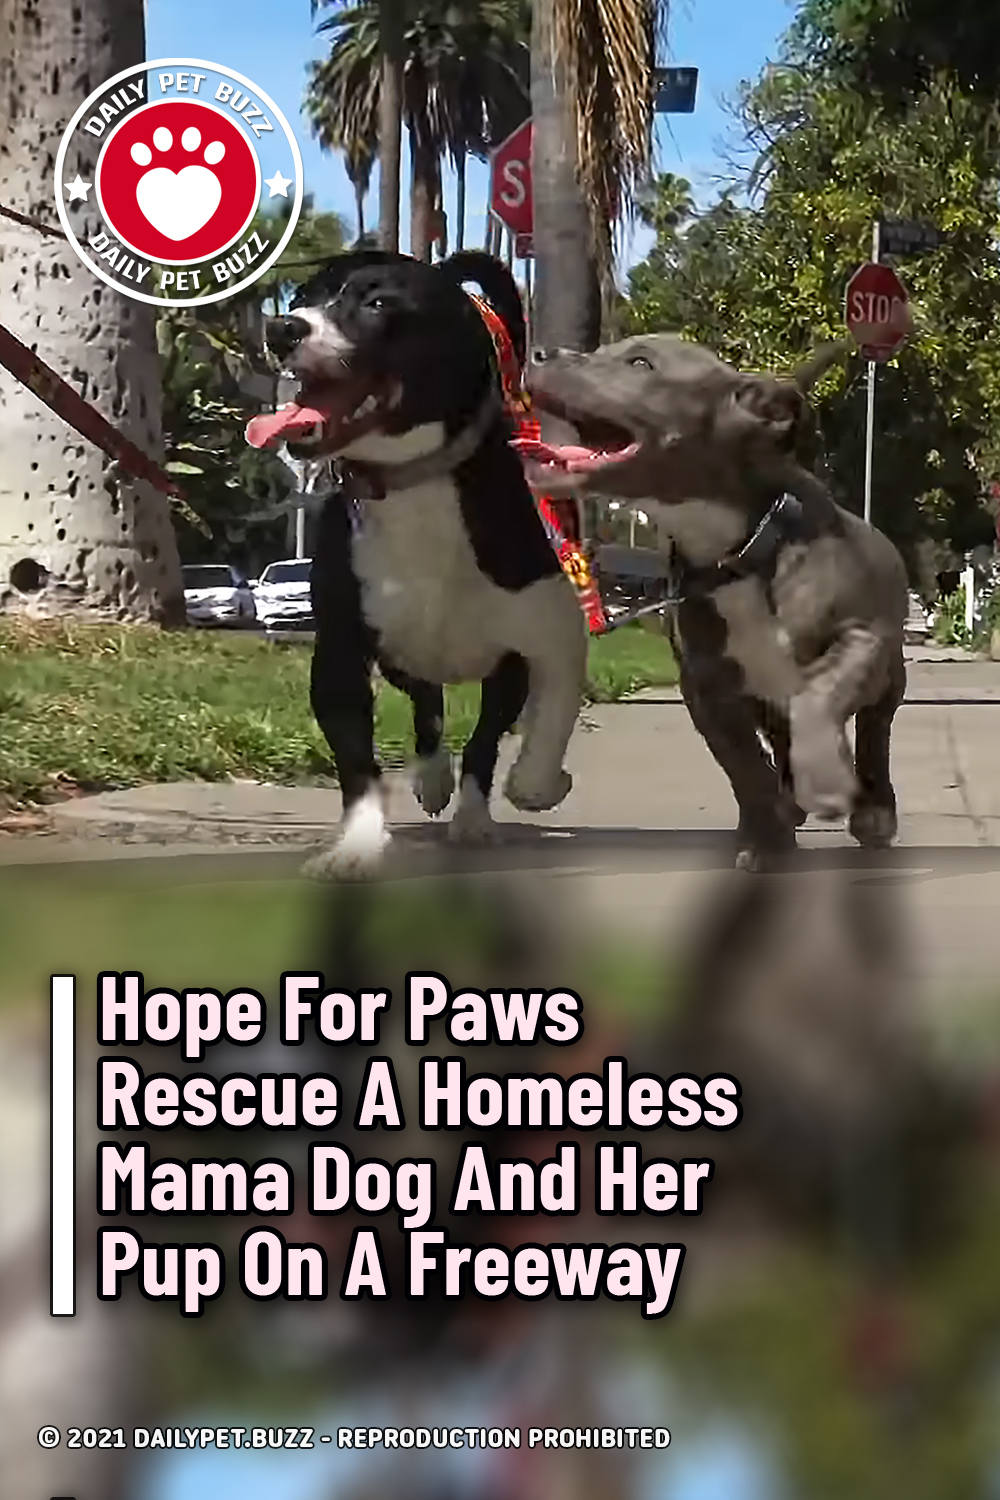 Hope For Paws Rescue A Homeless Mama Dog And Her Pup On A Freeway